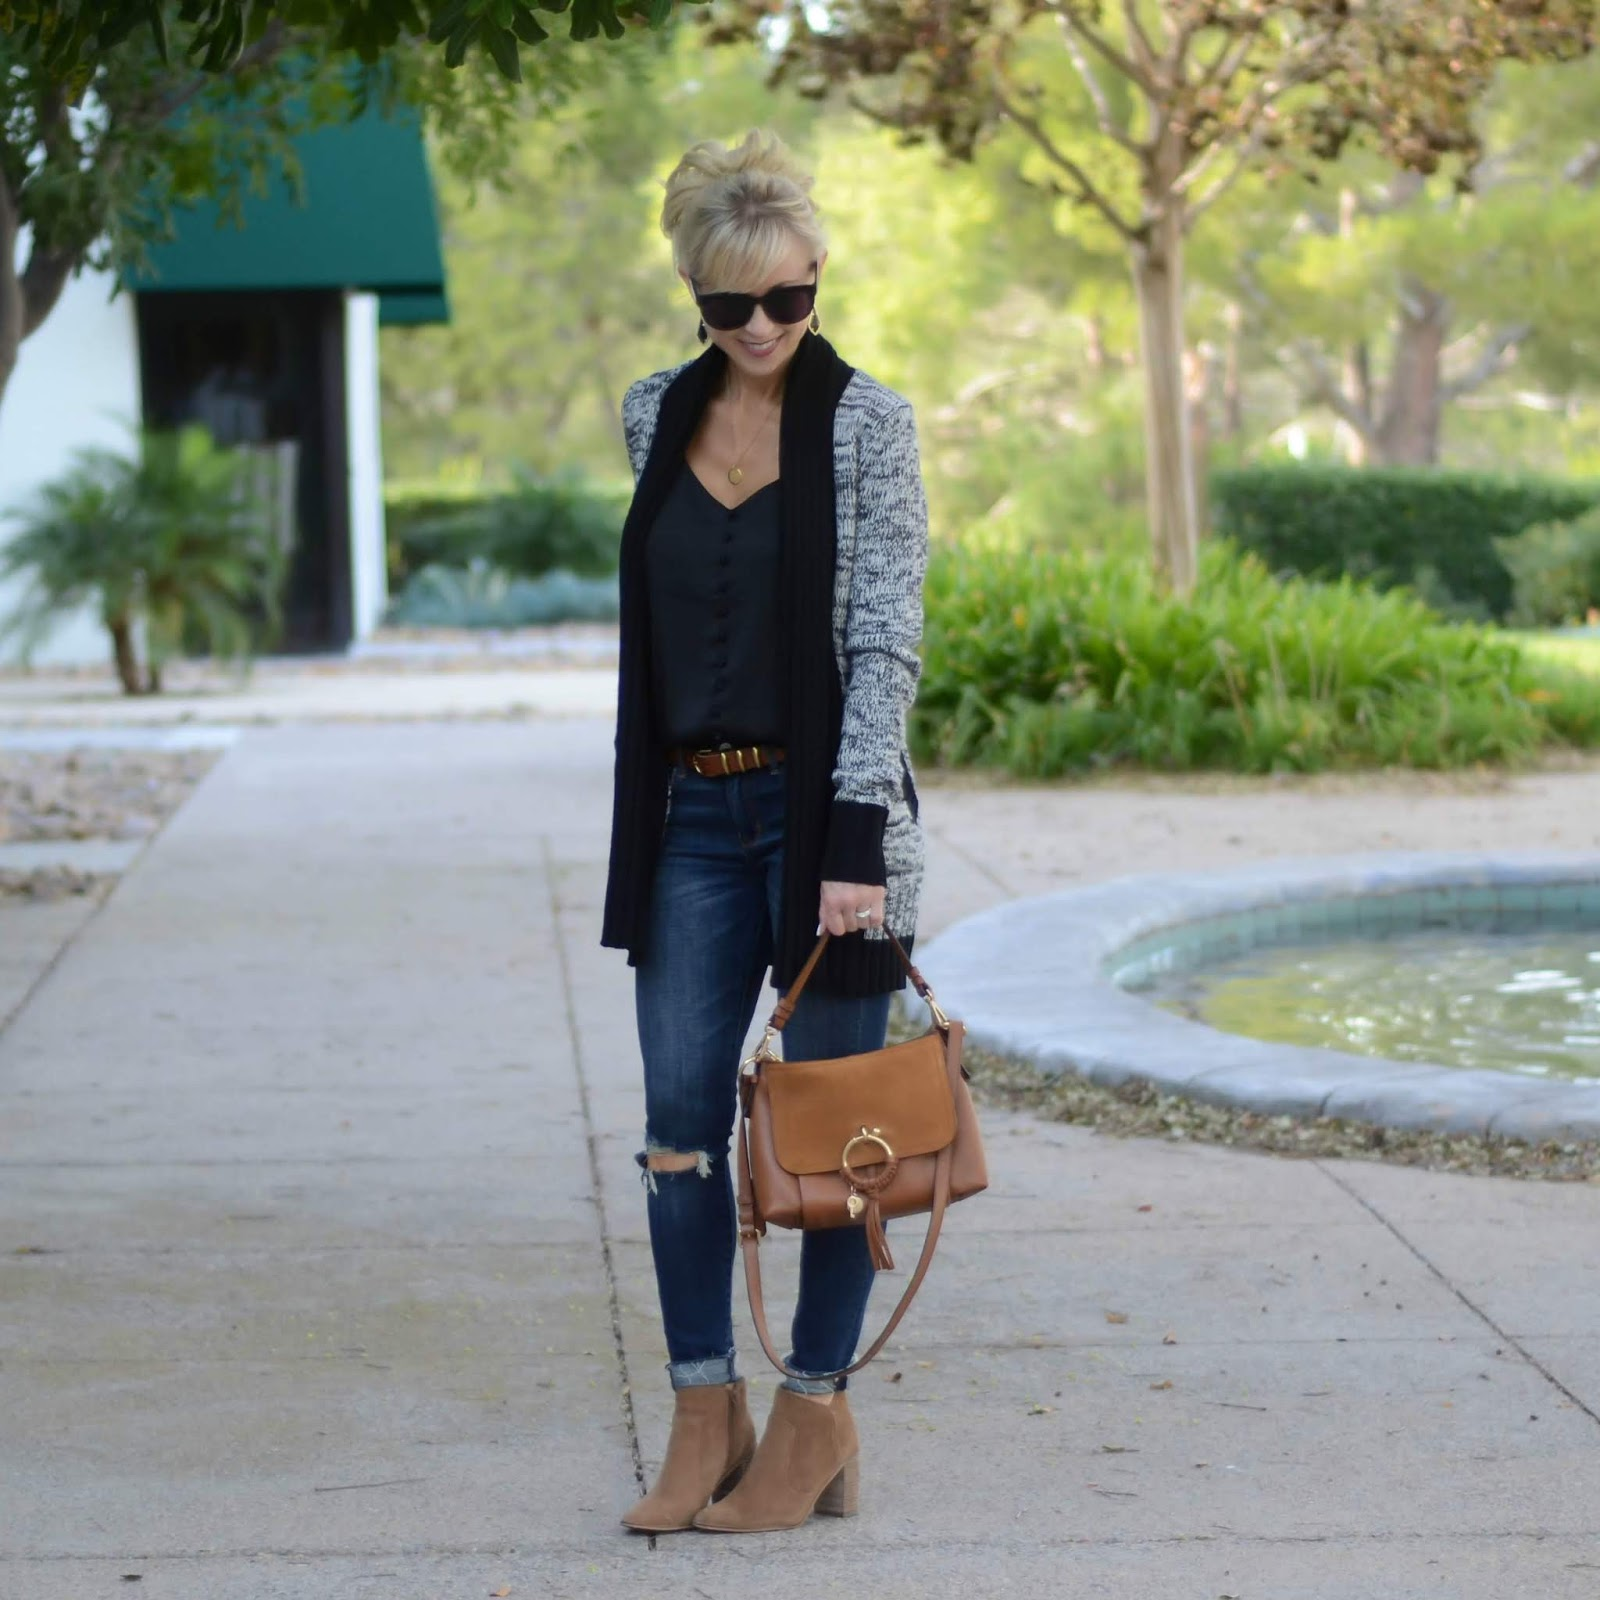 0a21596f Cozy Cardigan + Black Friday Begins | On the Daily E X P R E S S ...